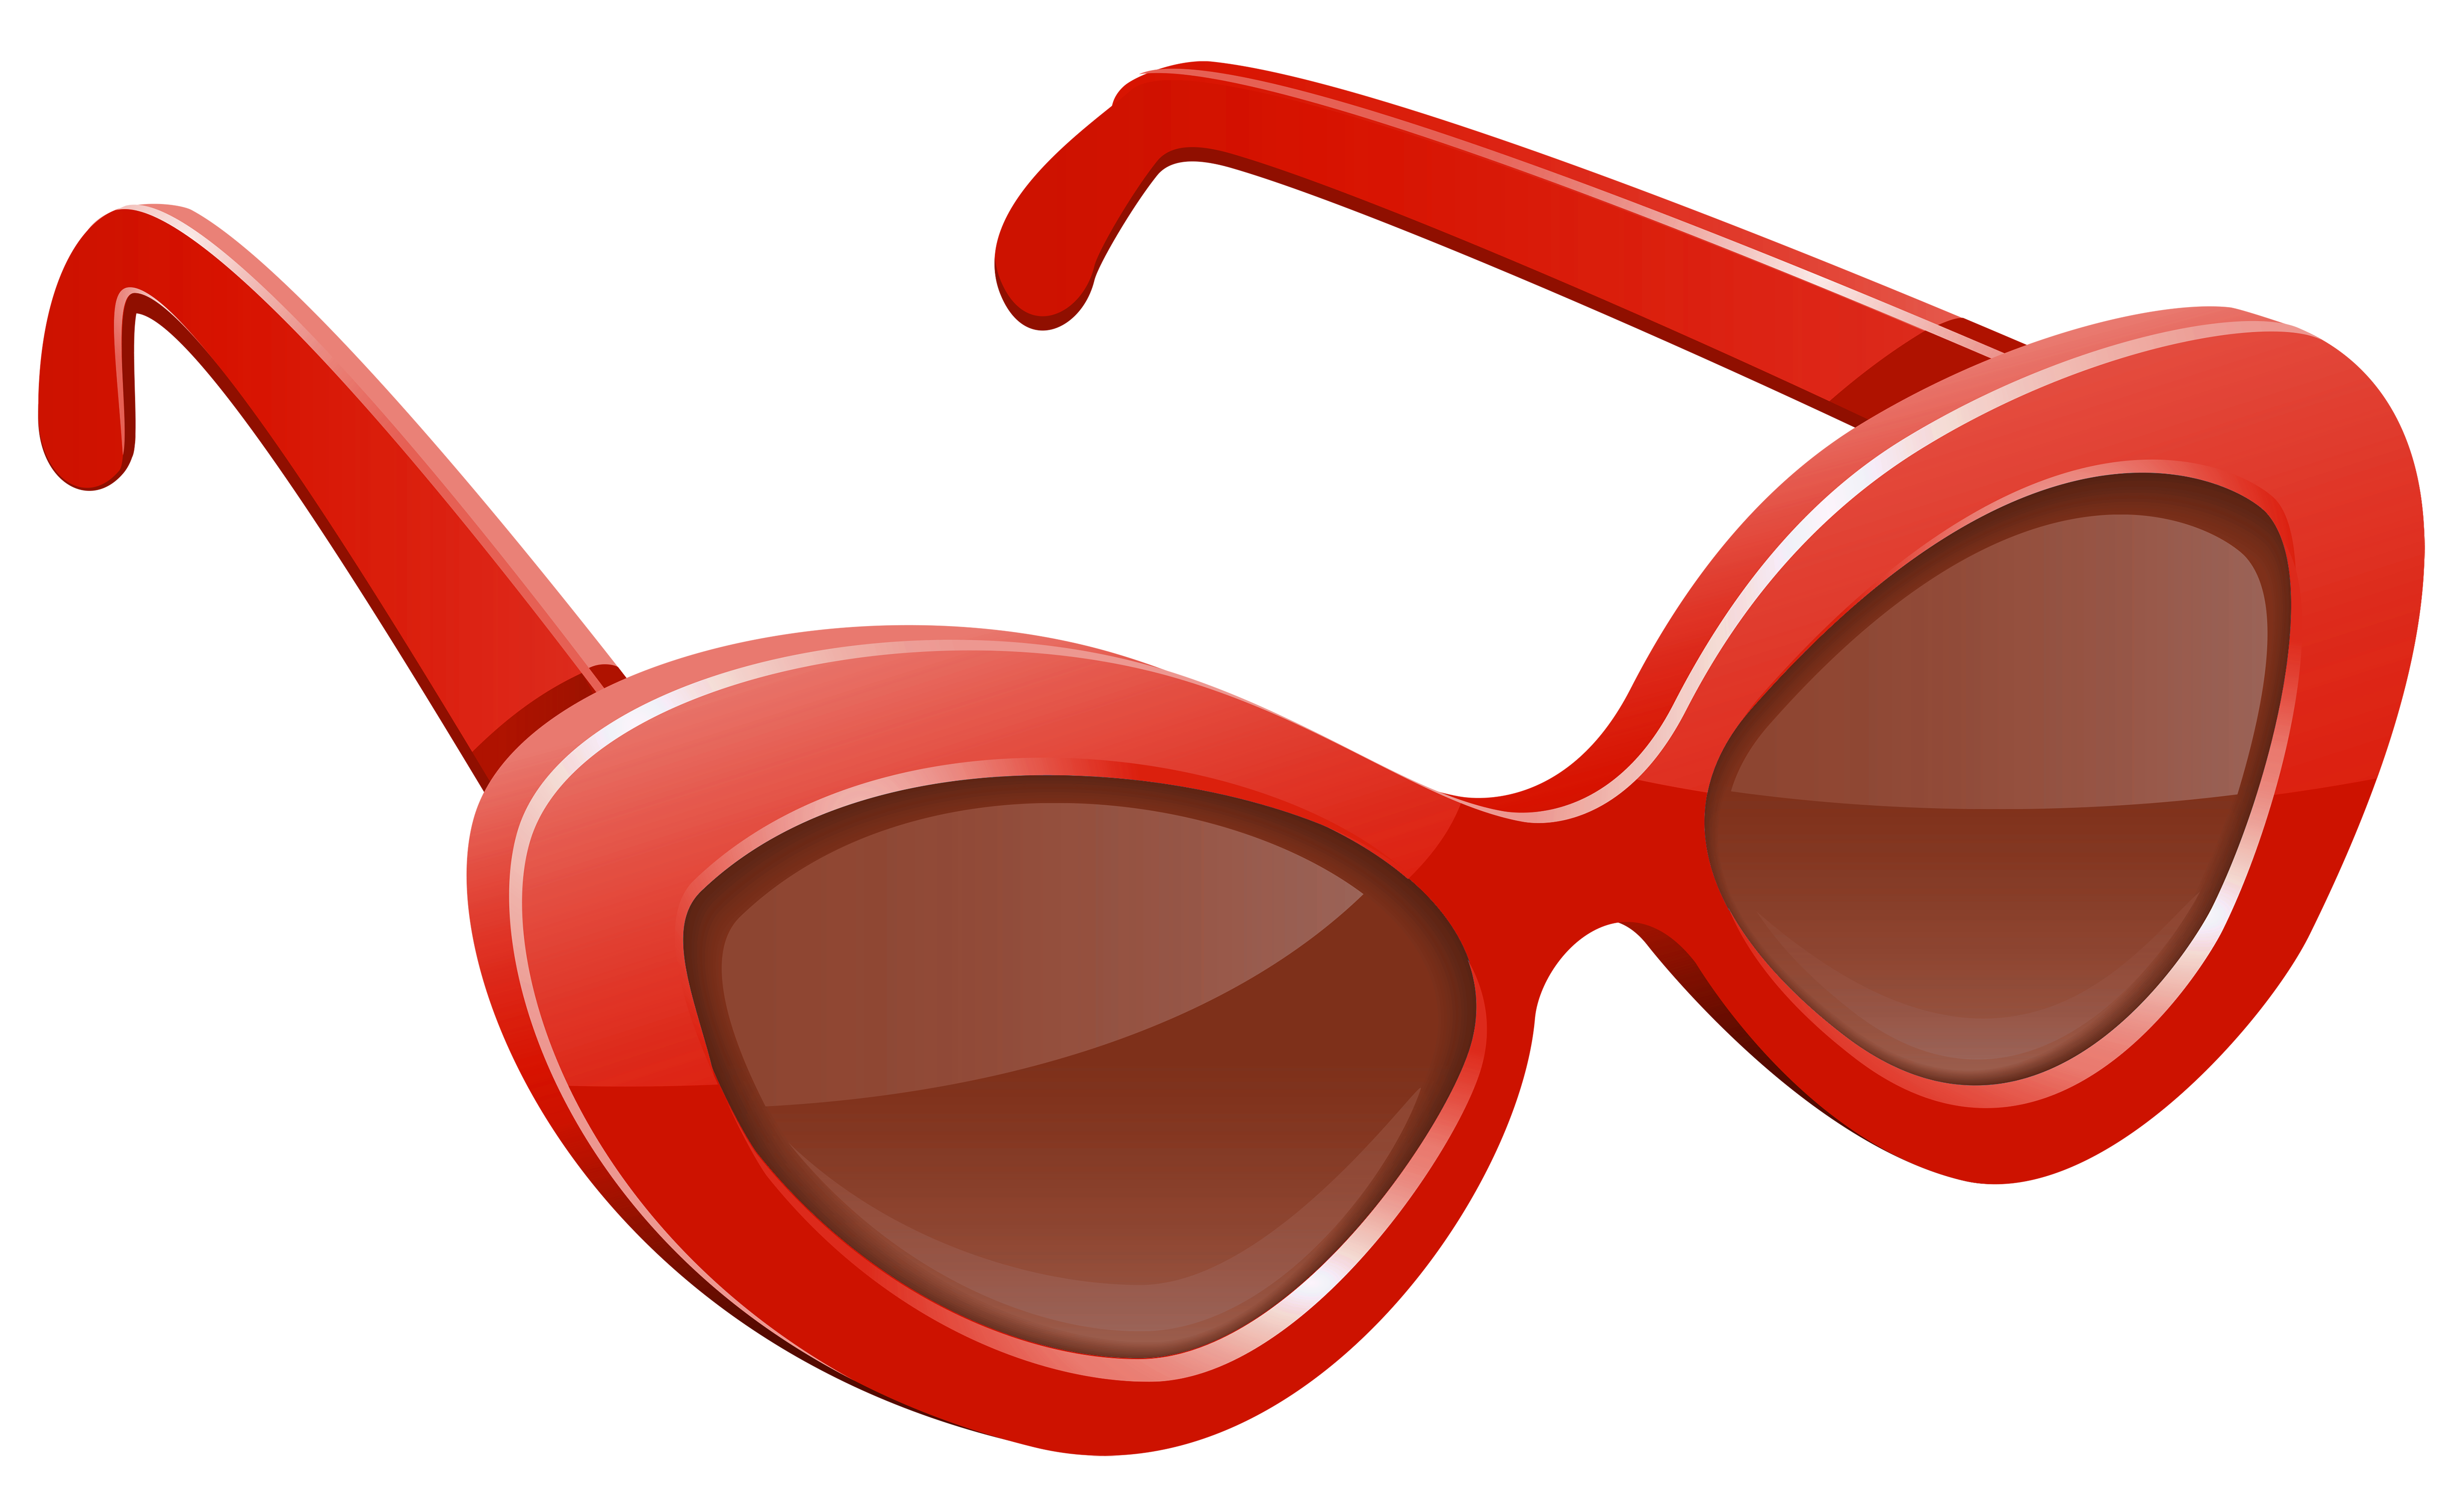 Sunglasses png picture gallery. Goggles clipart red glass